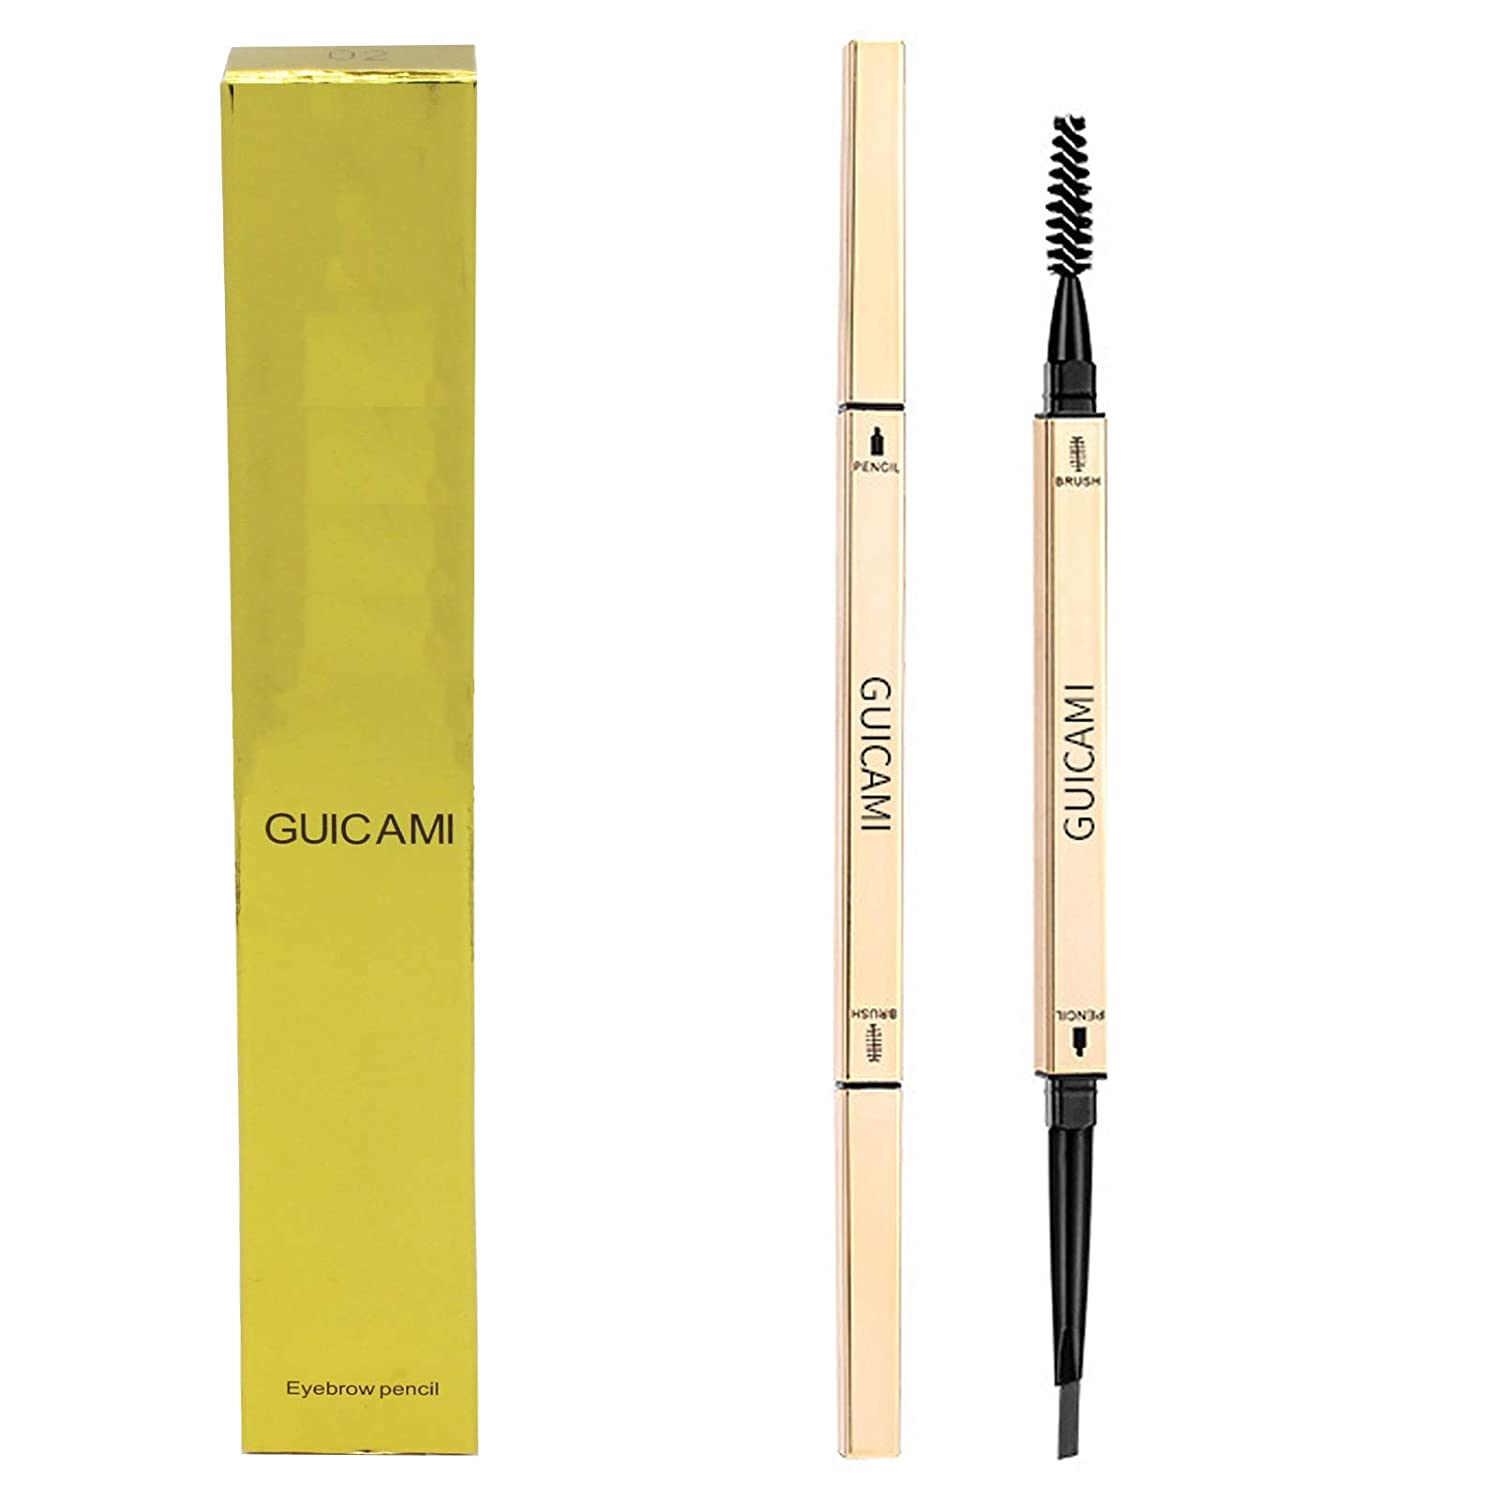 Eyebrows Pencil Waterproof With Dual Fi Ends Max 67% OFF Brown SEAL limited product Dark Eyebrow